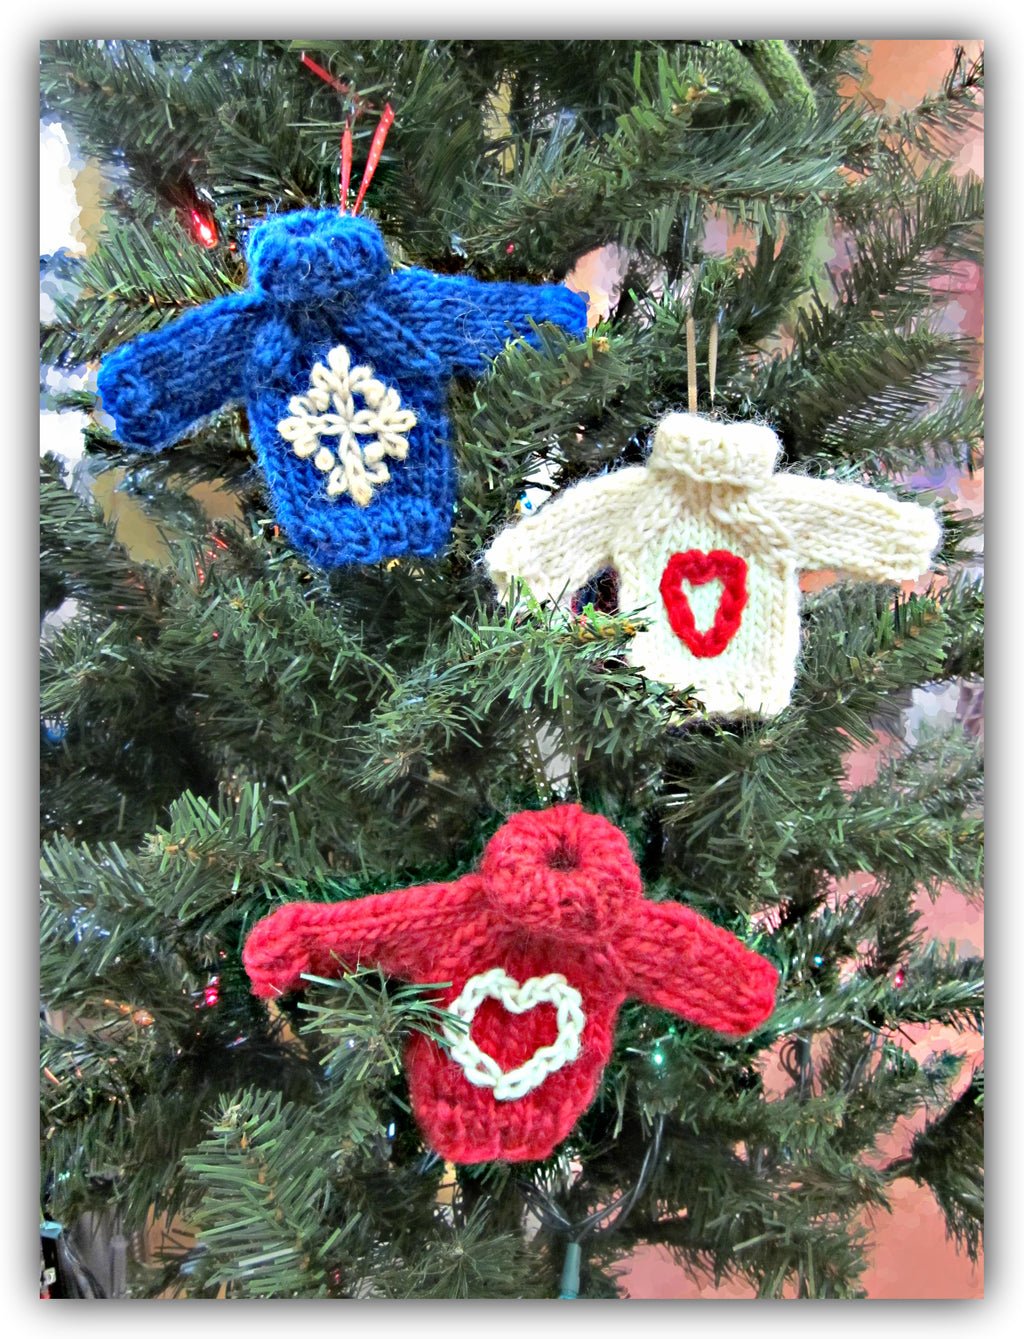 Christmas Sweater Ornaments - Designed by Stephanie Boozer